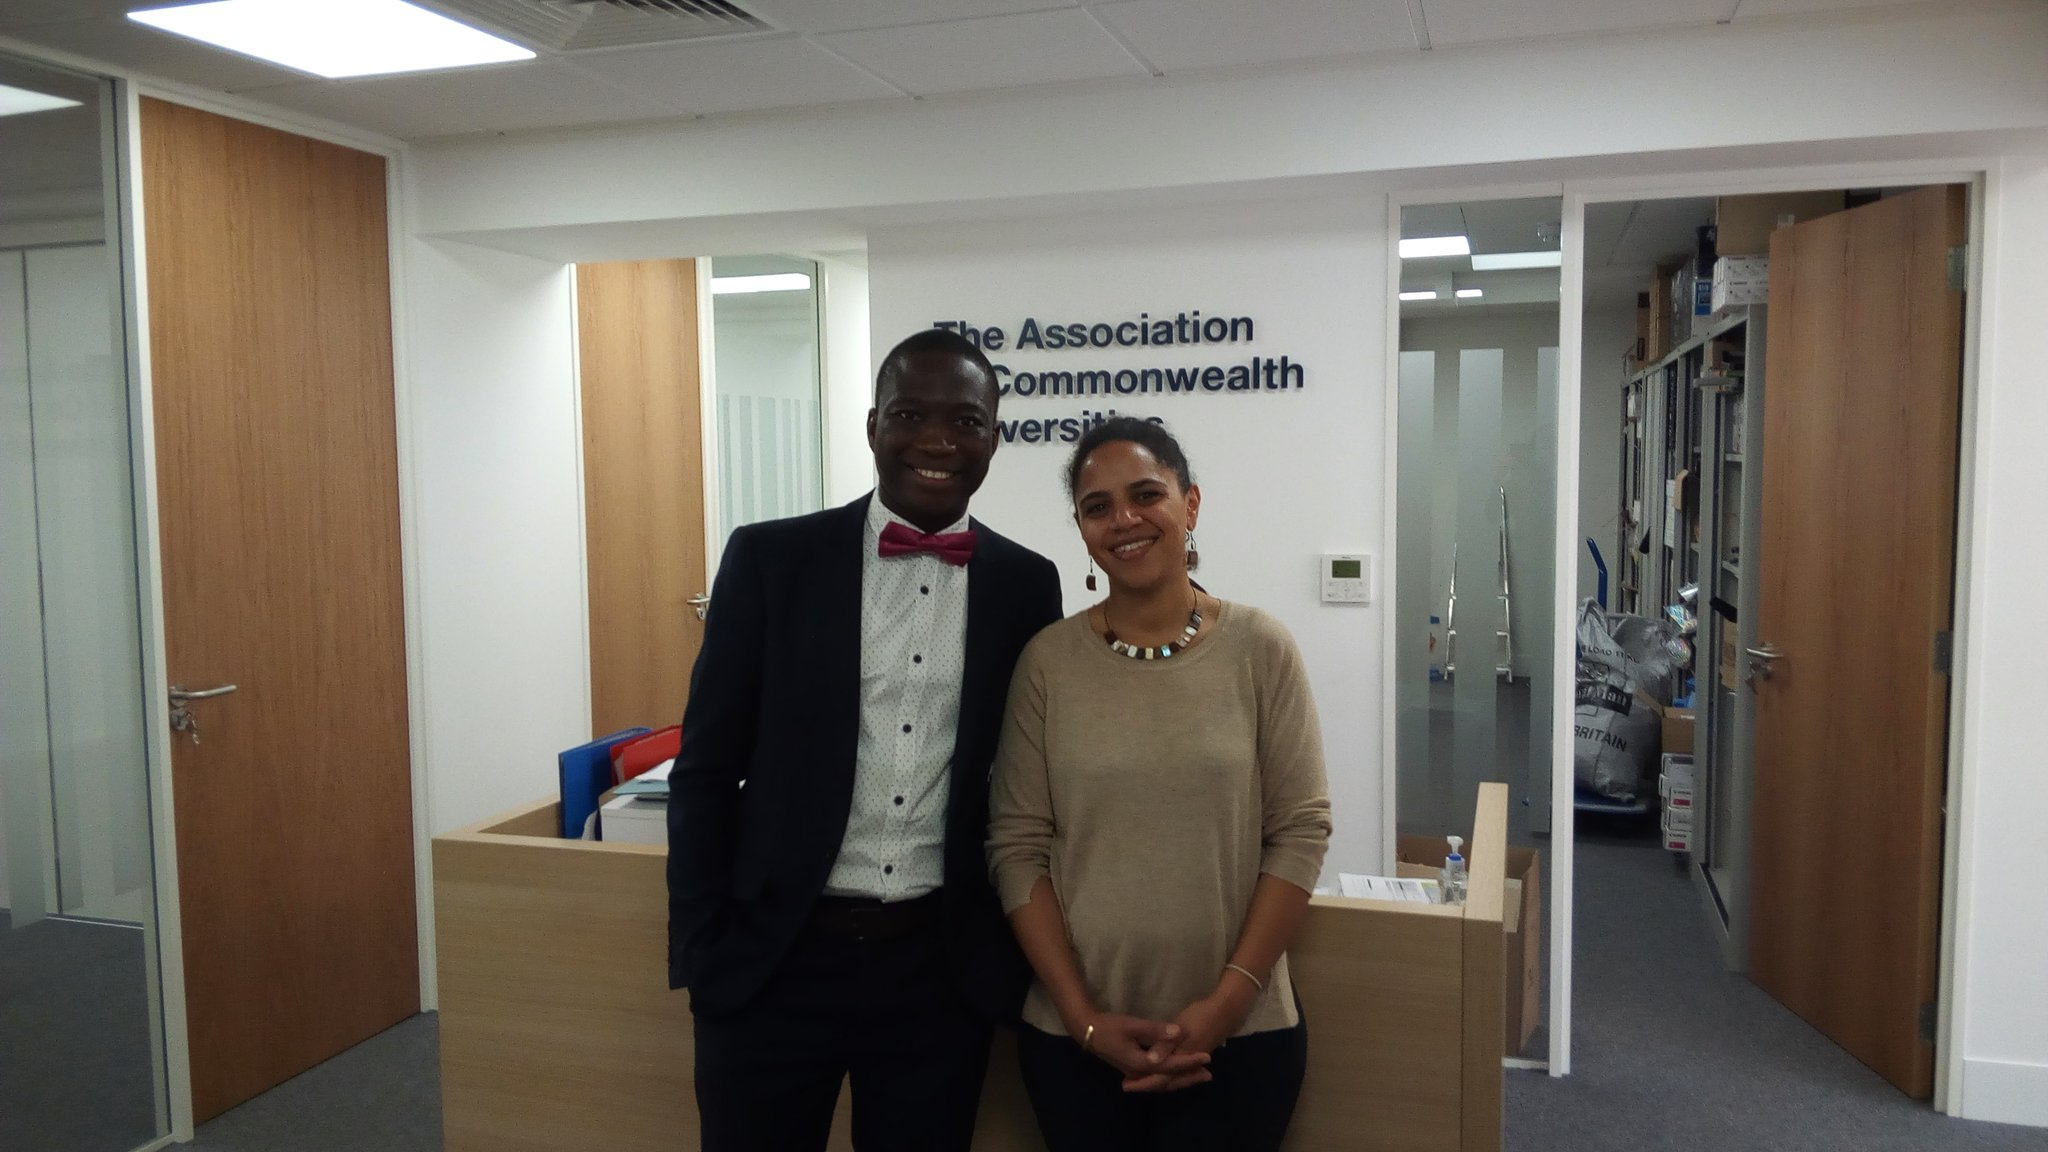 """Olushola Fadairo on Twitter: """"#CIRCLEAfrica With Jay on my visit to The ACU  office, London en route to Cambridge for the Int. Conf. on Climate change:  Impact & Responses.… https://t.co/ashoVTLrZ4"""""""